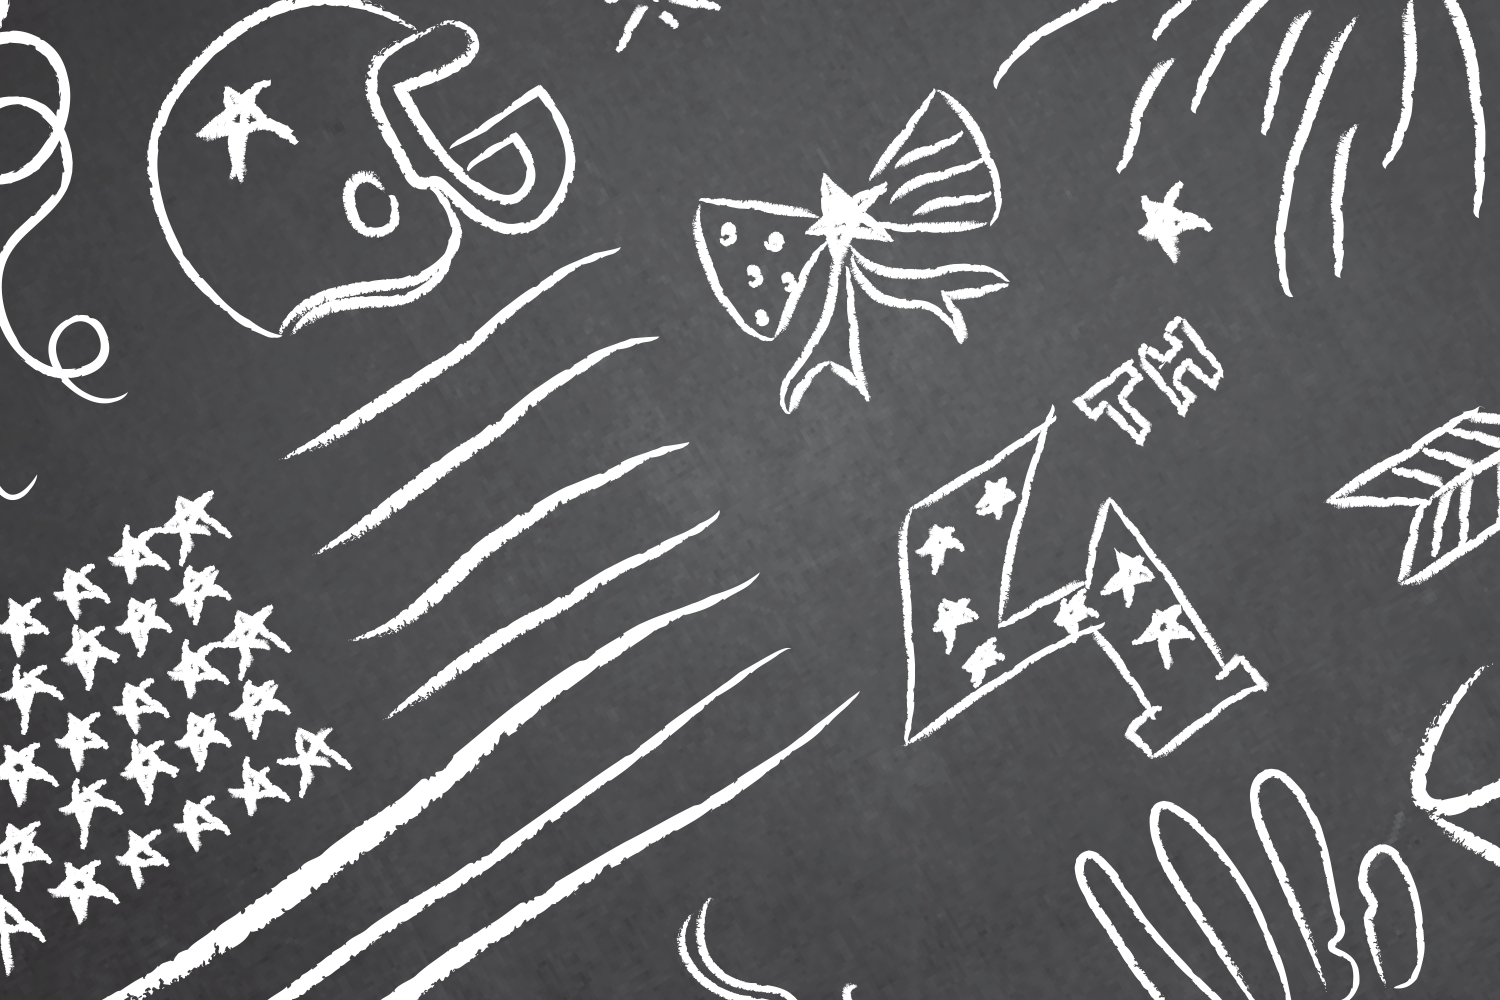 Patriotic 4th of July Chalkboard Vector Clipart in EPS/AI/PDF/PSD example image 2